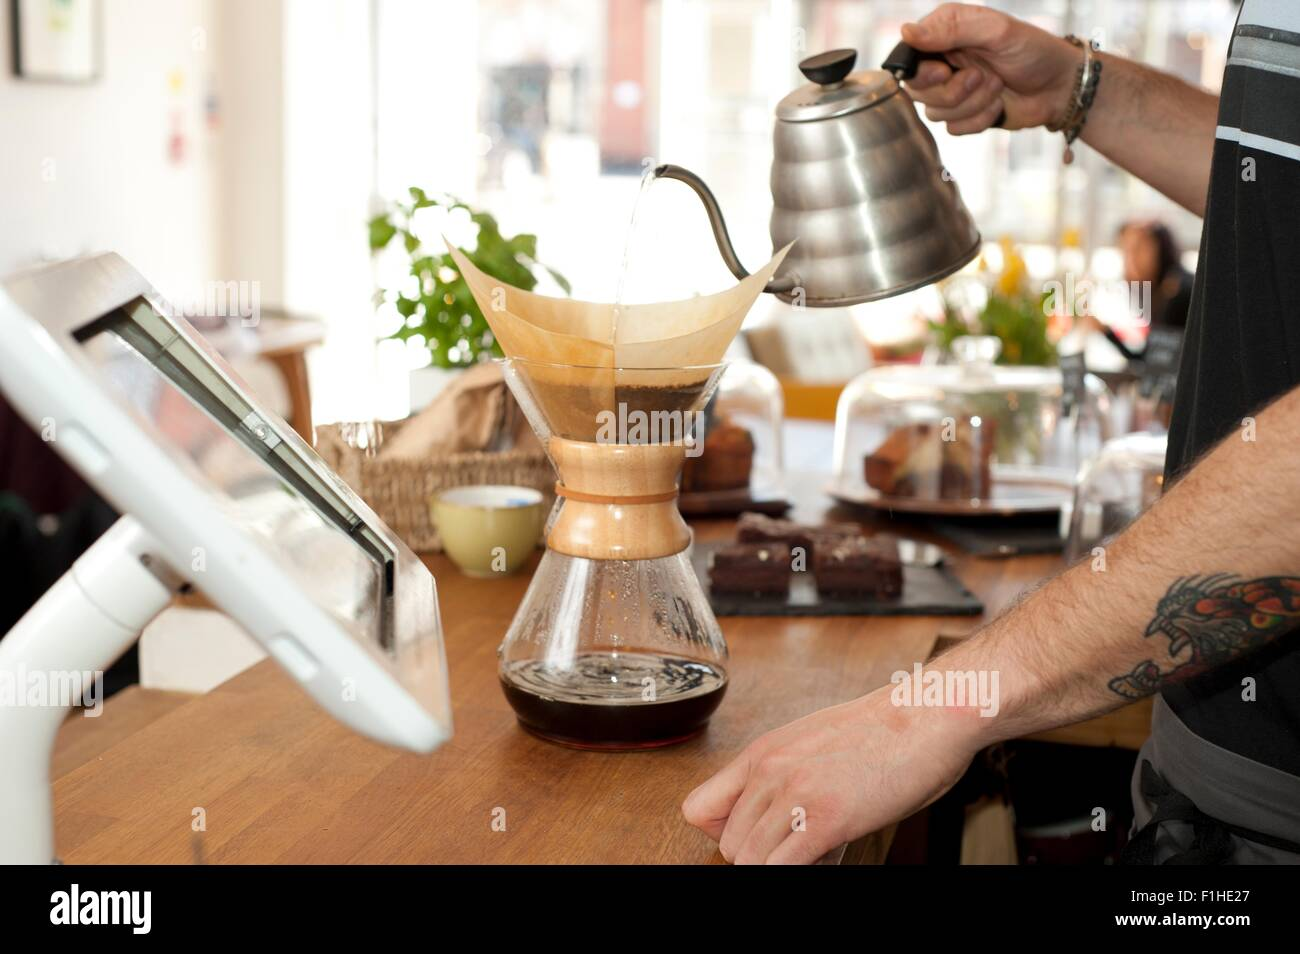 Hands of cafe waiter pouring boiling water into filter coffee pot - Stock Image